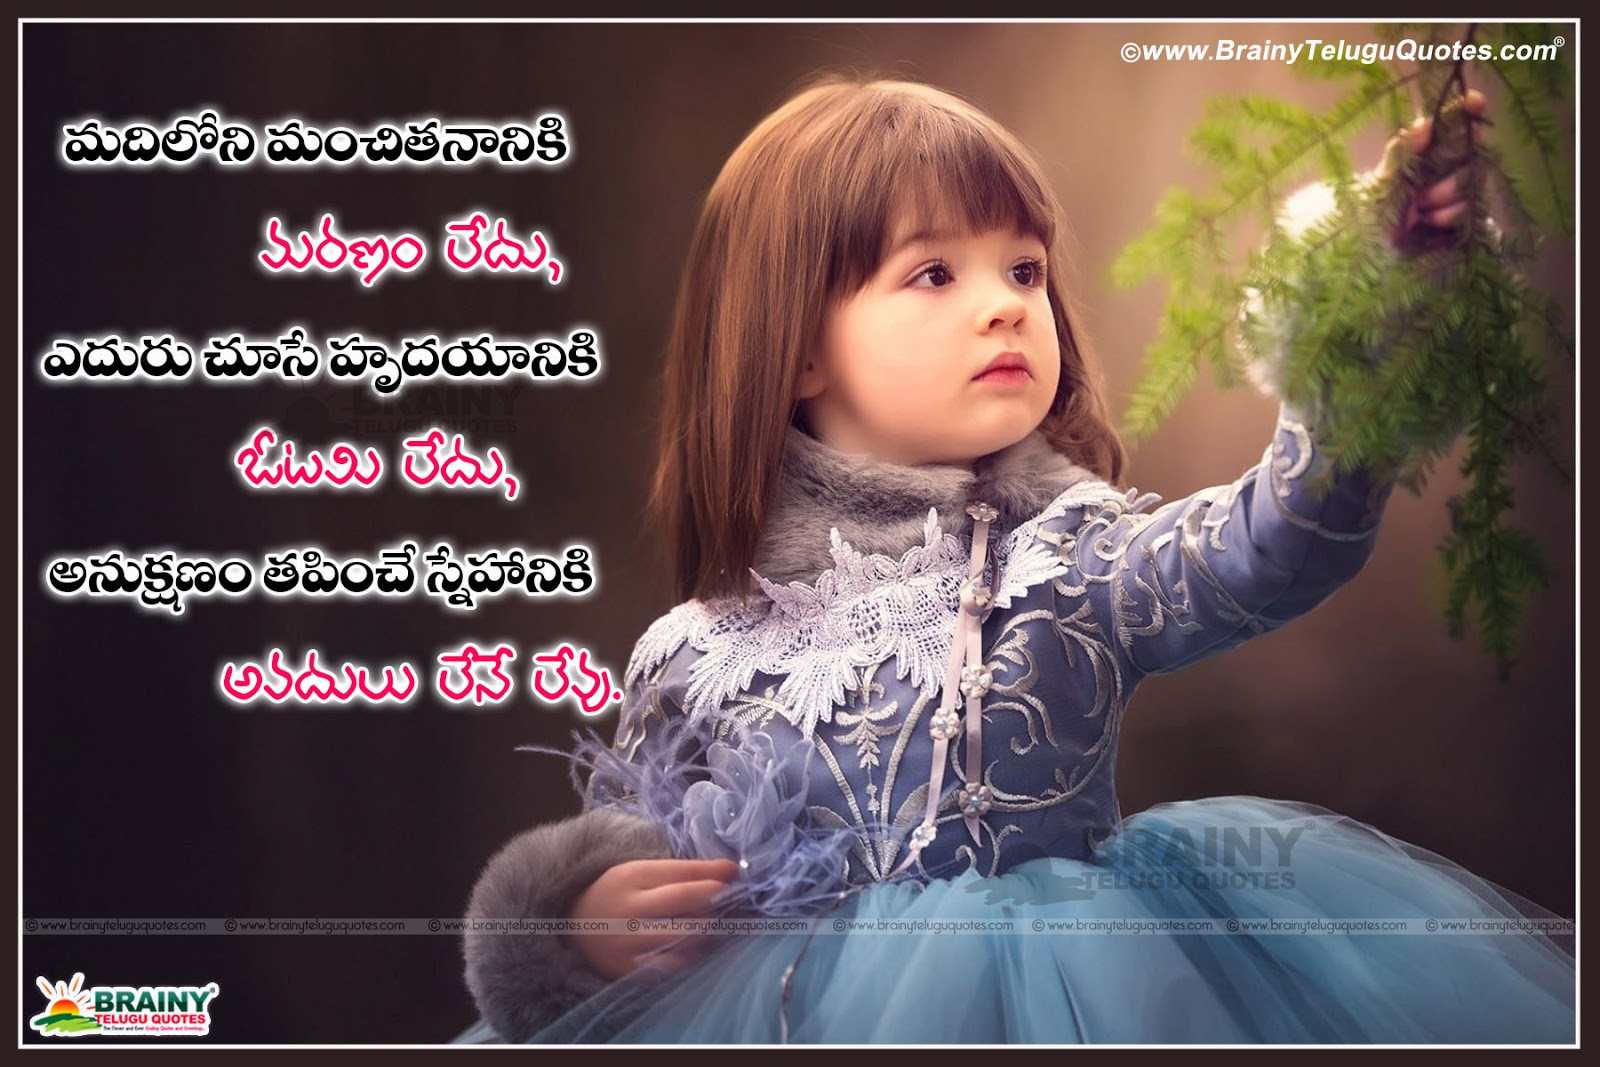 Best Telugu Friendship Quotes with girl hd wallpapers ...